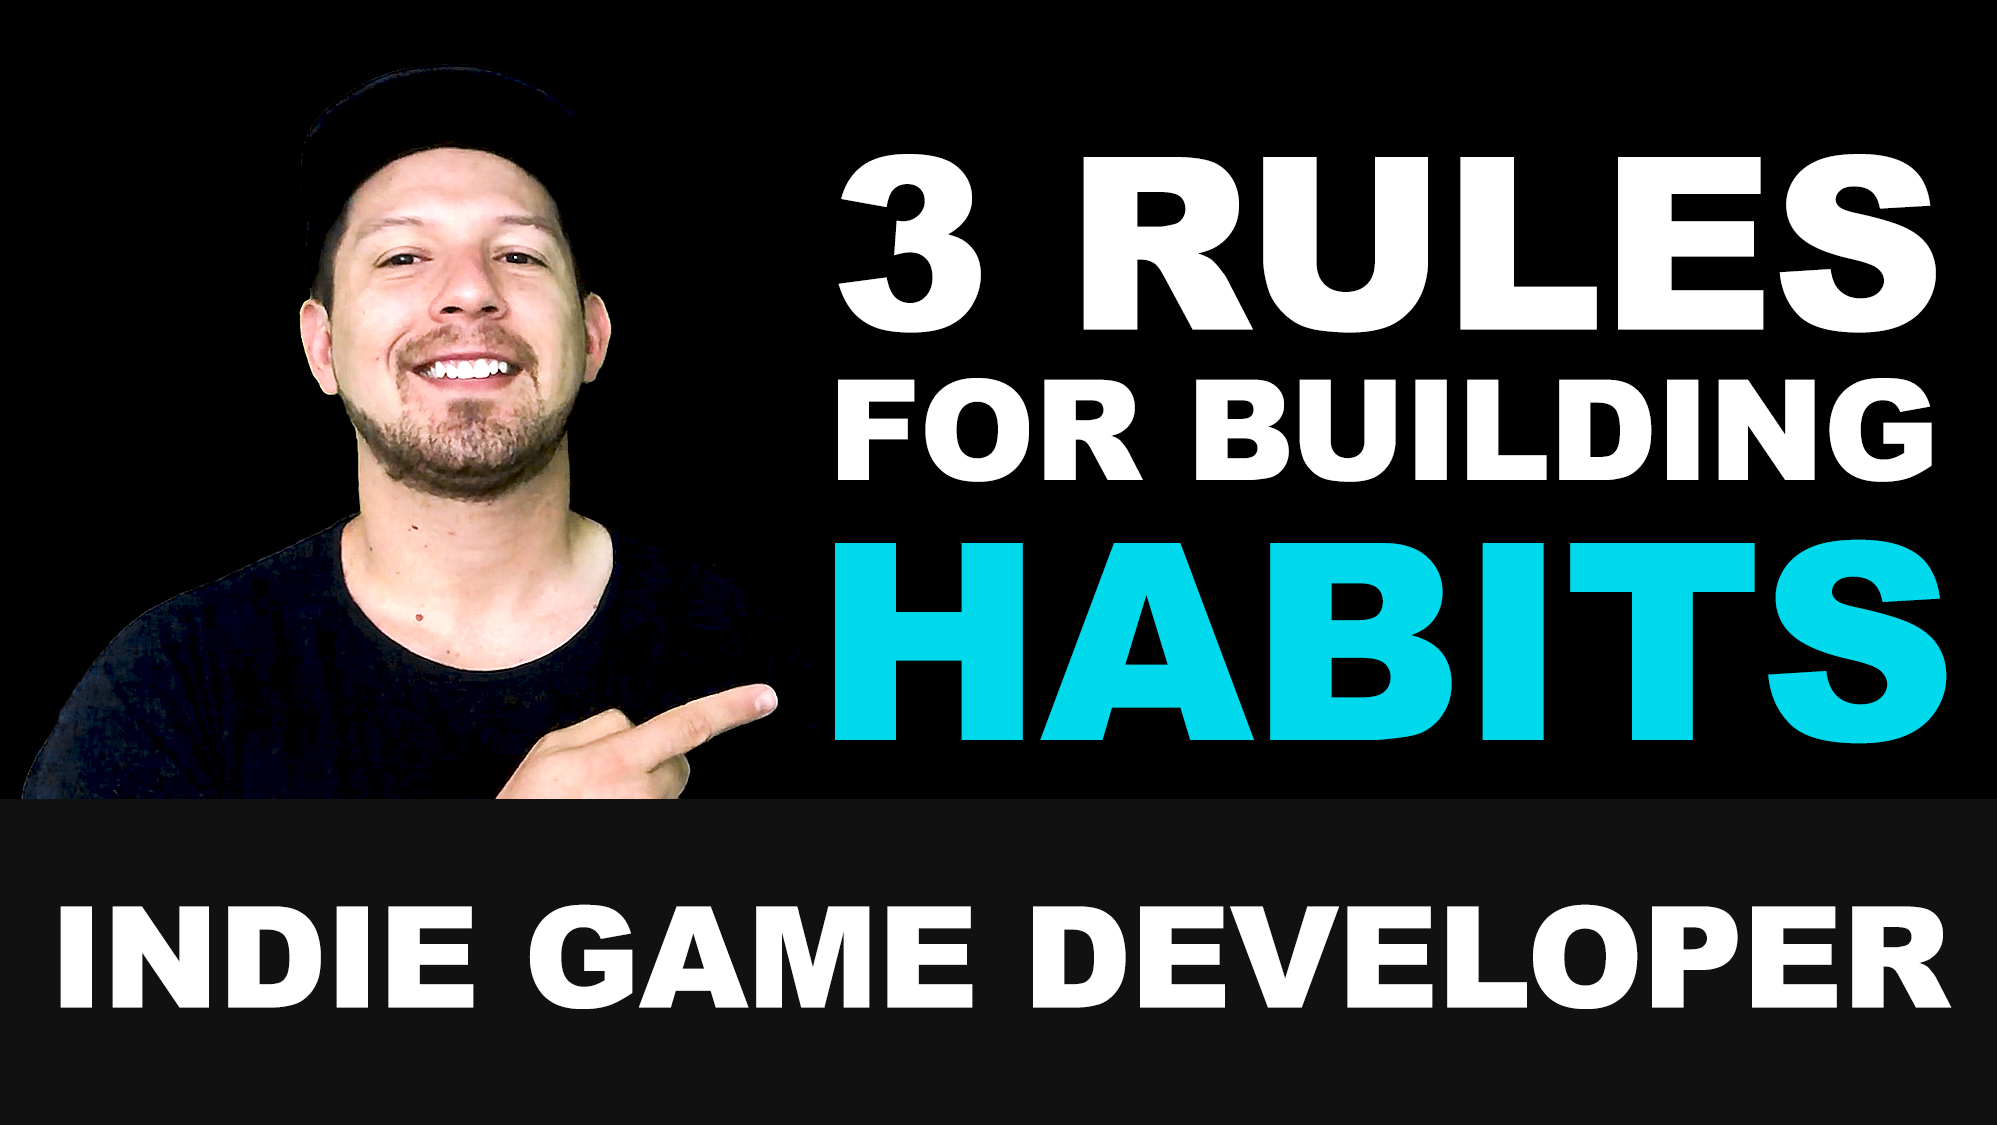 3 Rules for building and improving habits for indie game developers